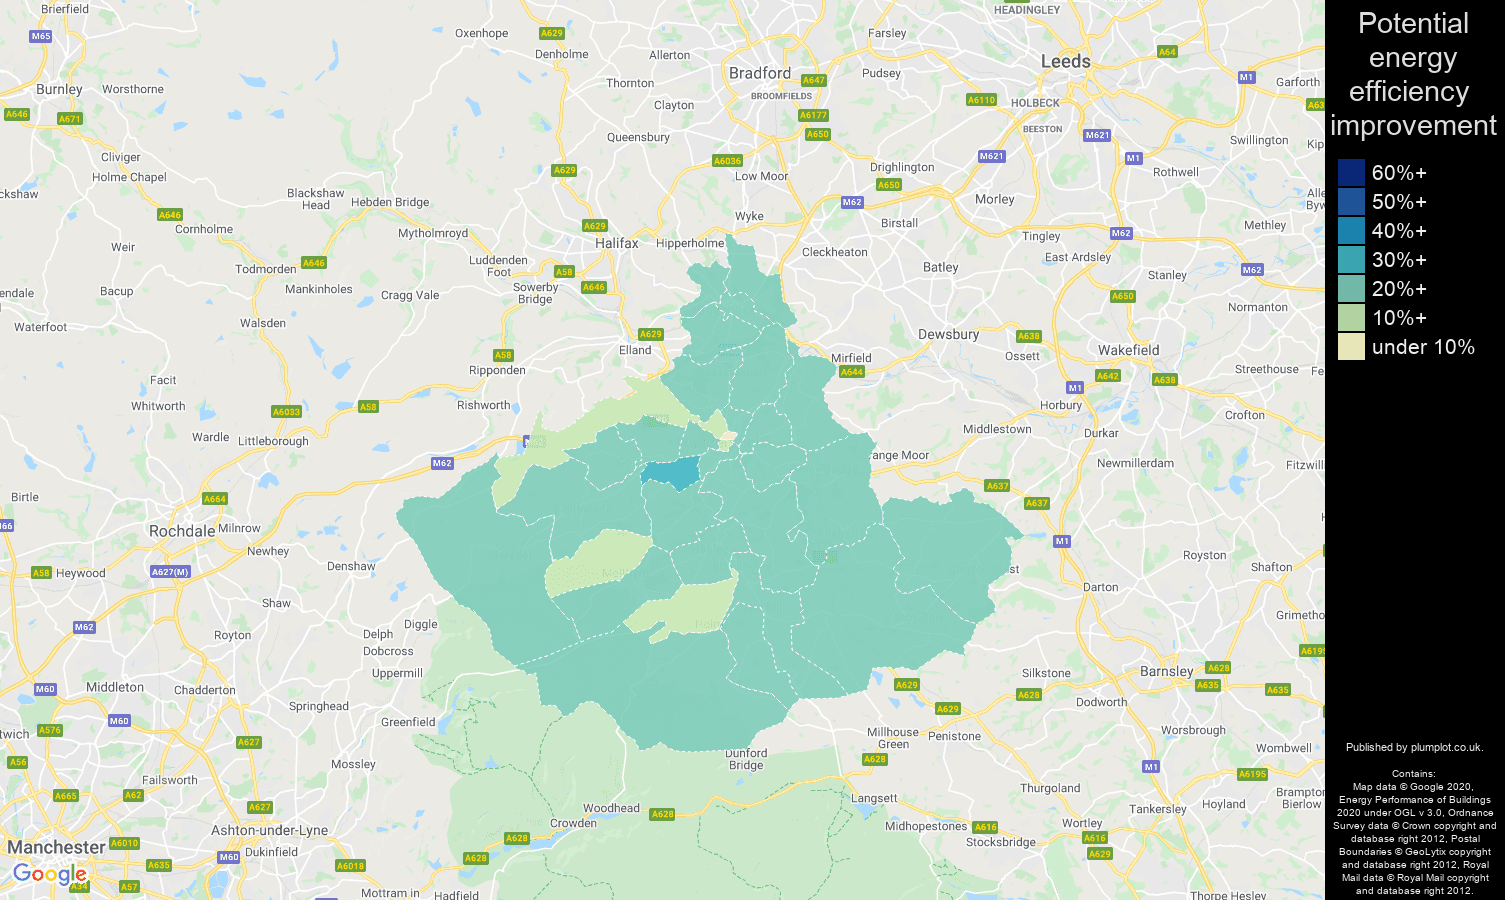 Huddersfield map of potential energy efficiency improvement of properties